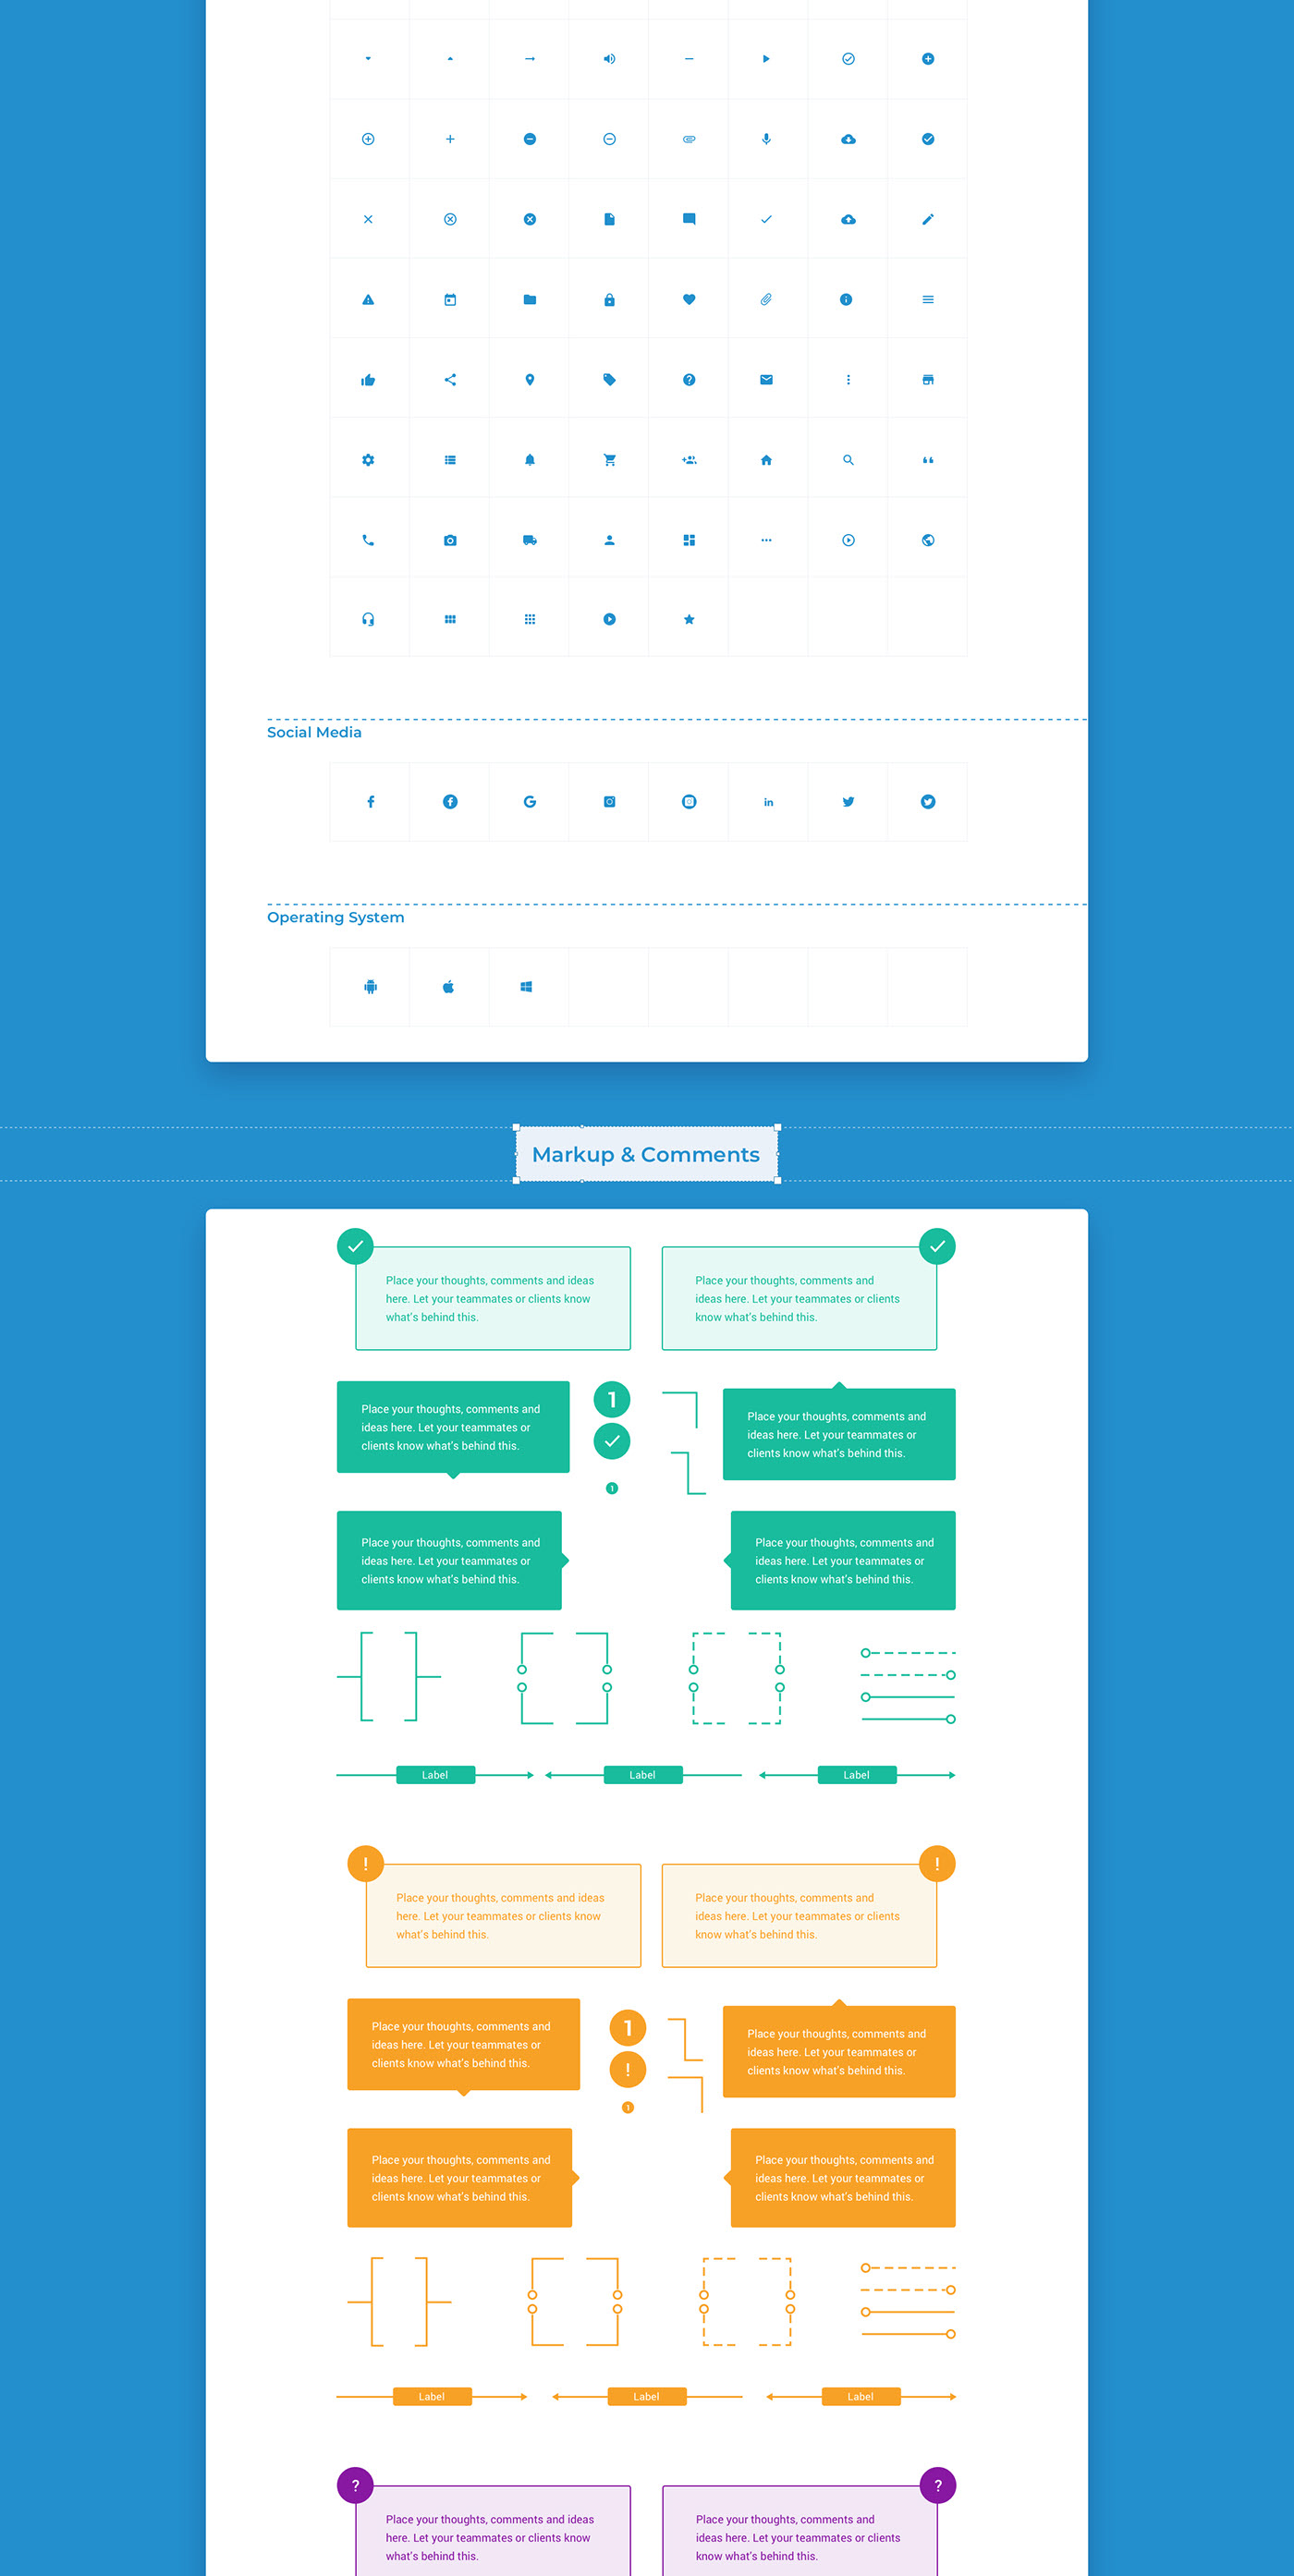 9bbff457728315.5f82276d3a58a - Wireland - Wireframe Library for Web Design Projects - Sketch Template